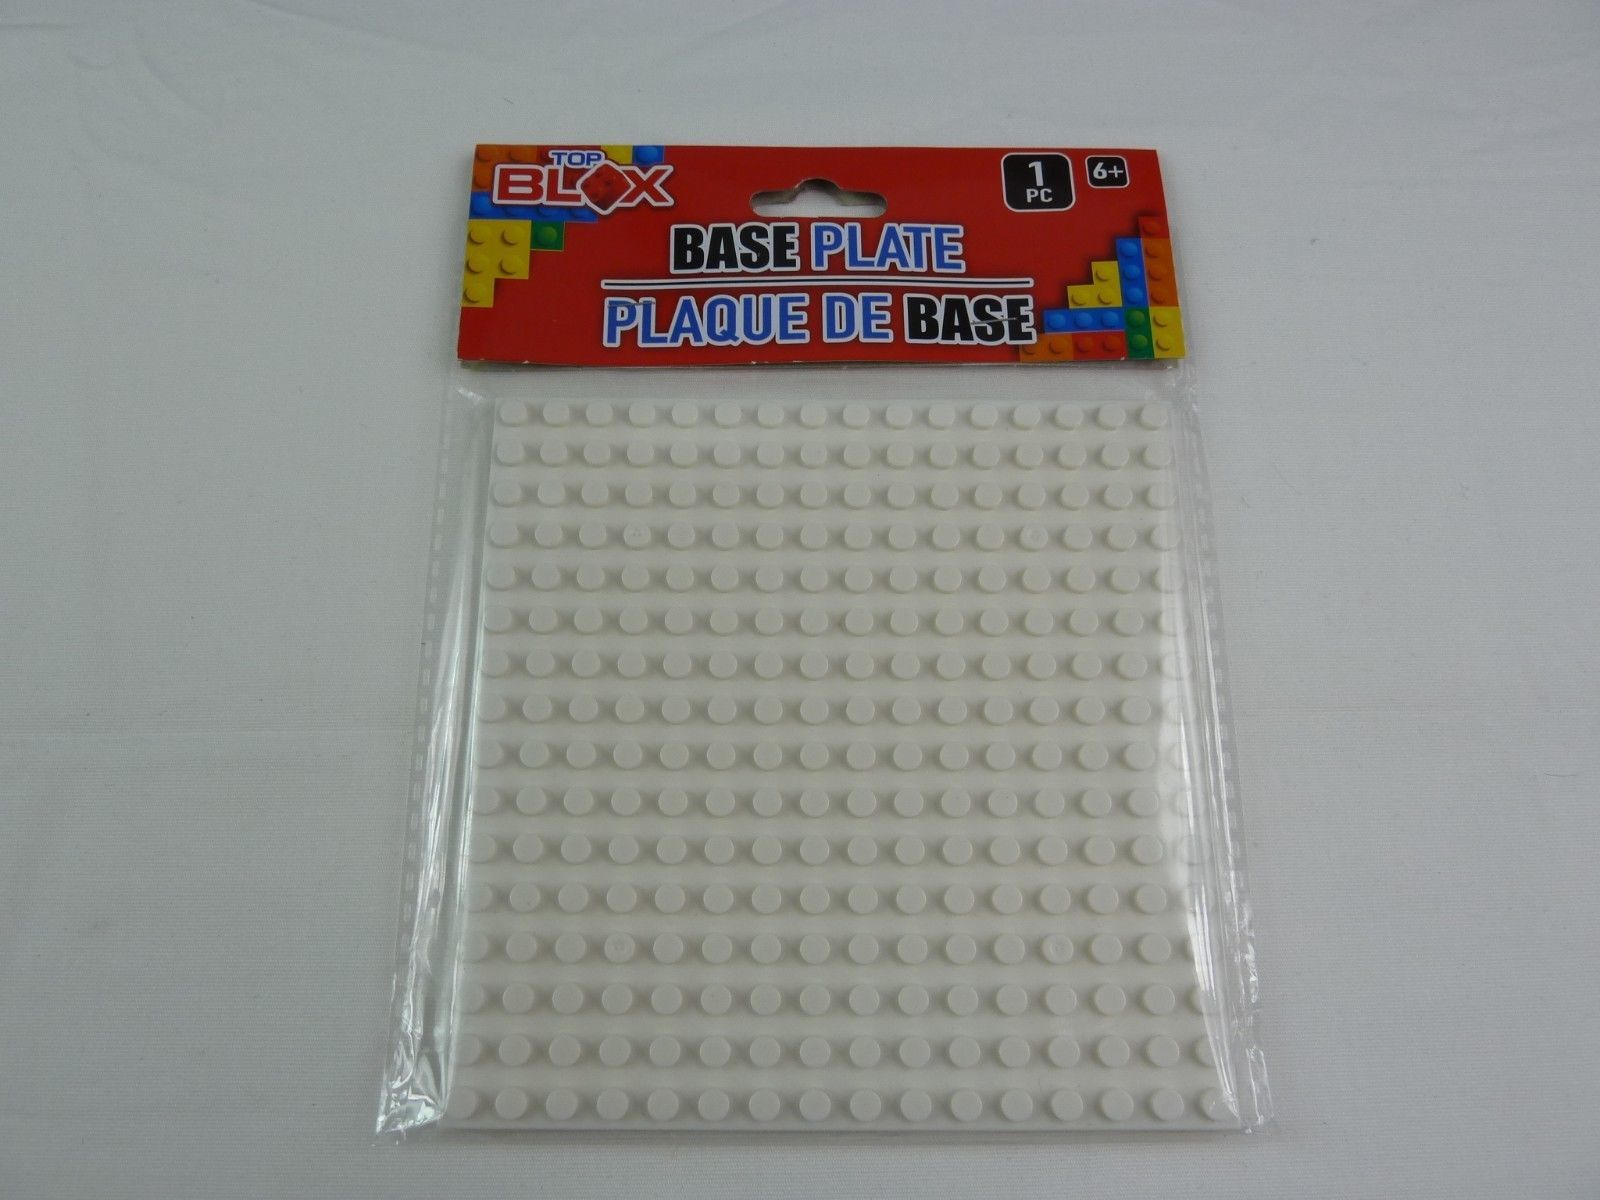 Lego Base Plate Lot of 5 LT Gray 8x16 Friends Style baseplates baseplate lot